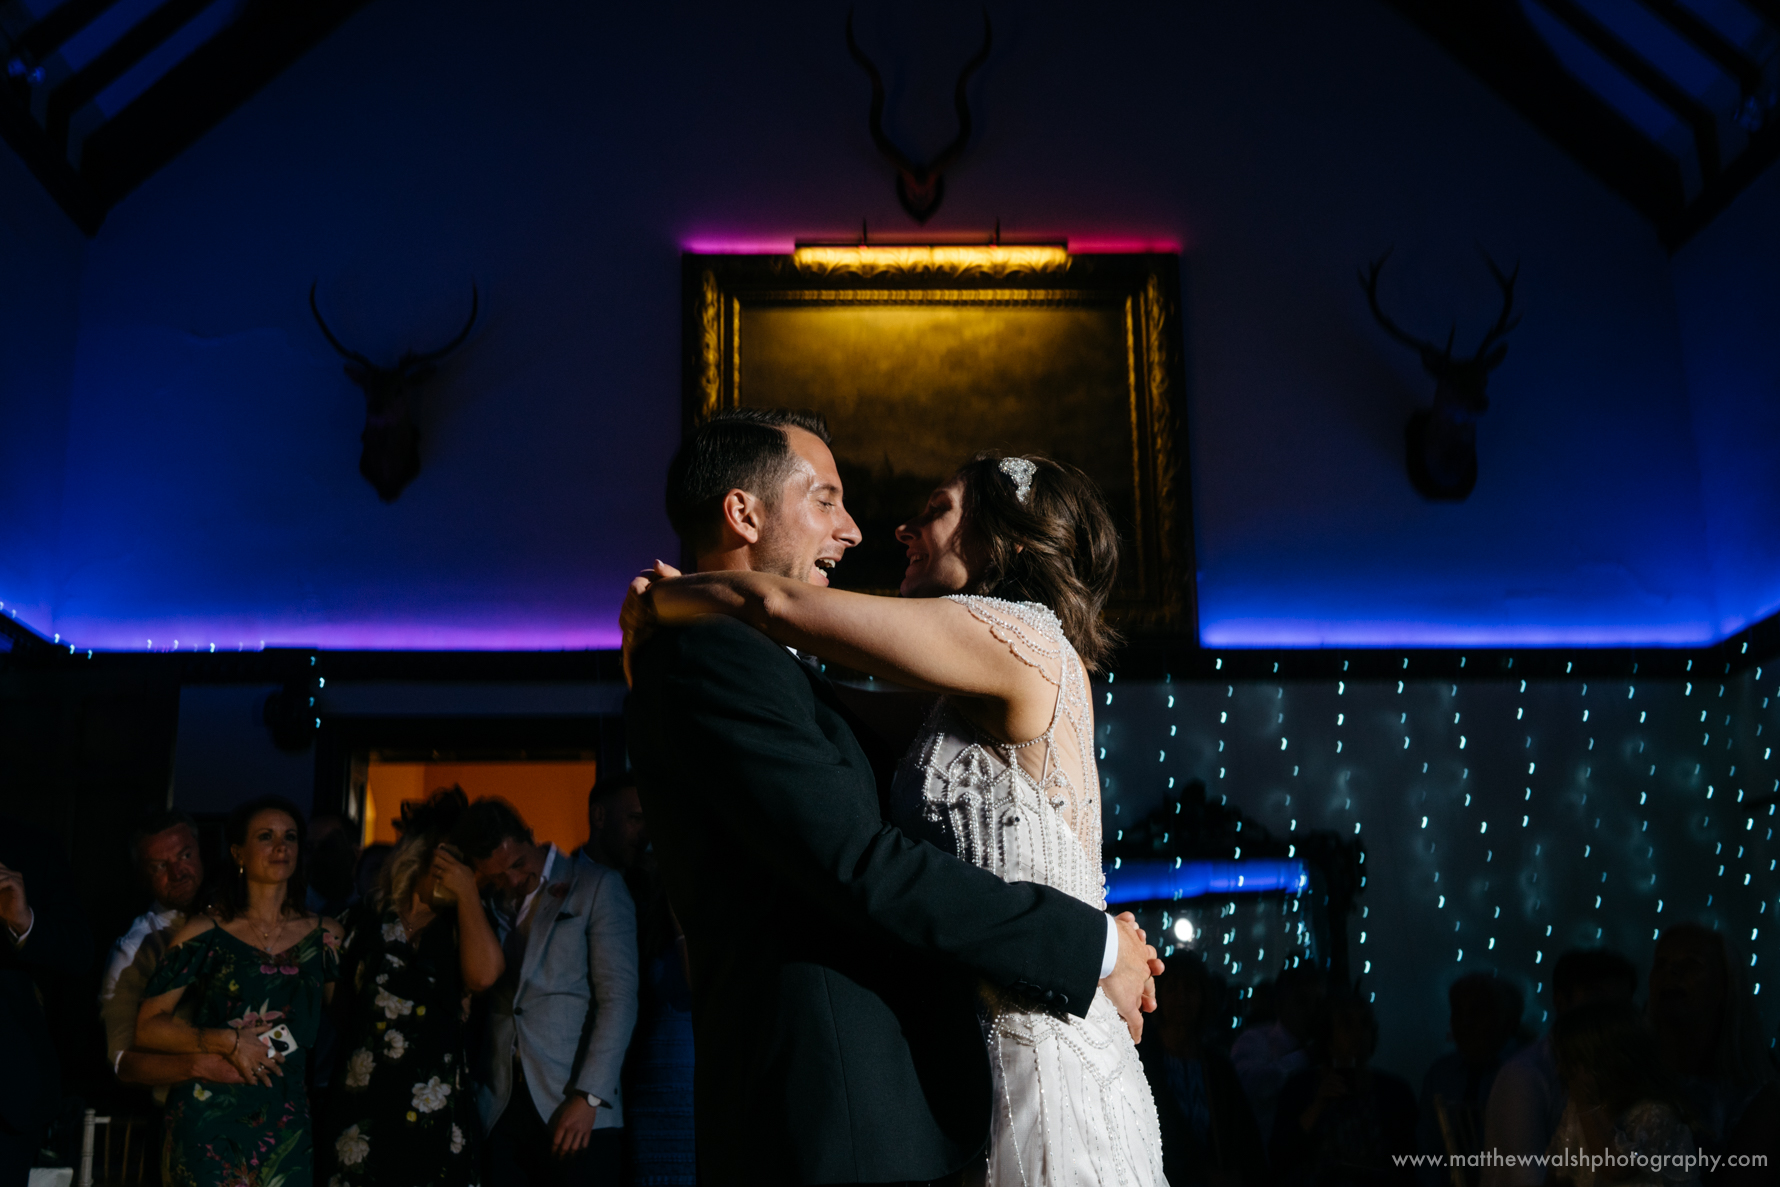 A beautiful first dance moment